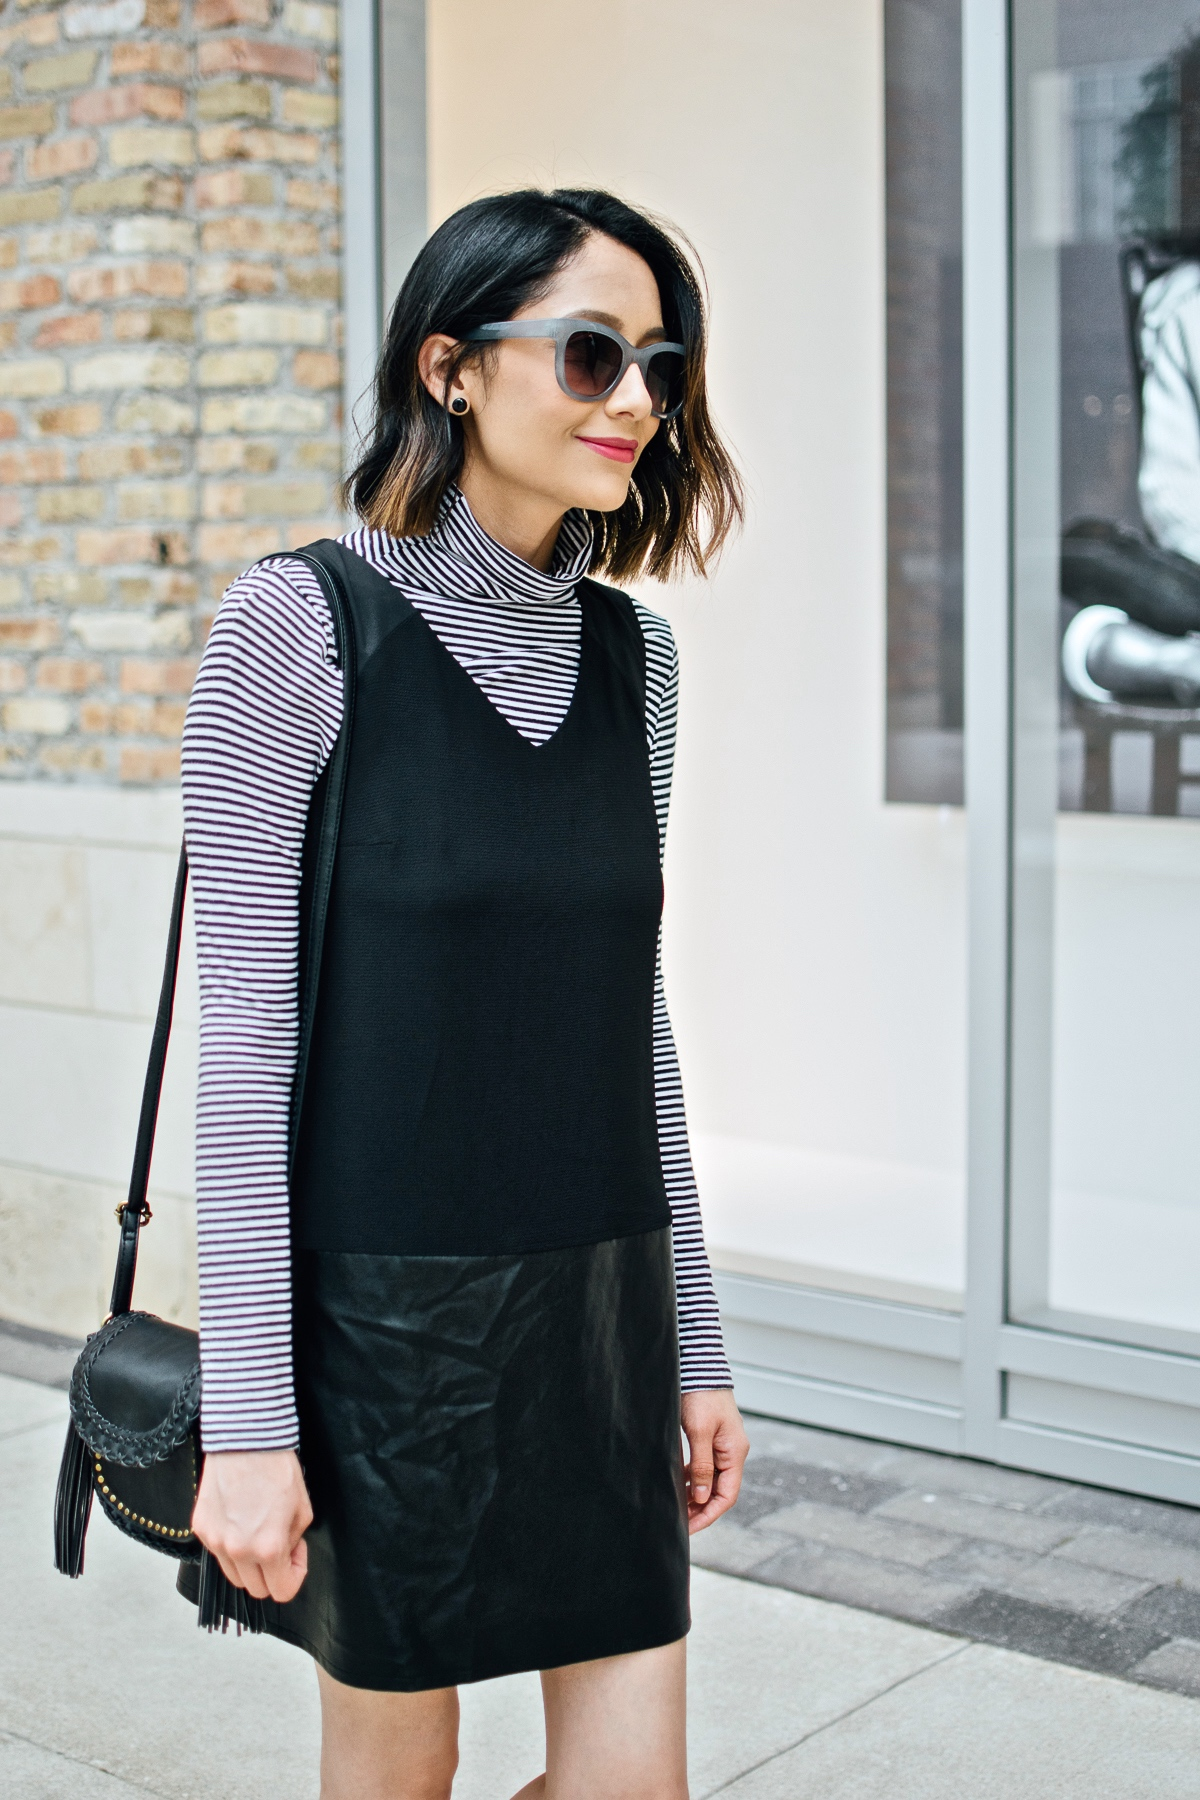 Daily Craving wearing a chic fall outfit with a black dress and striped t-shirt